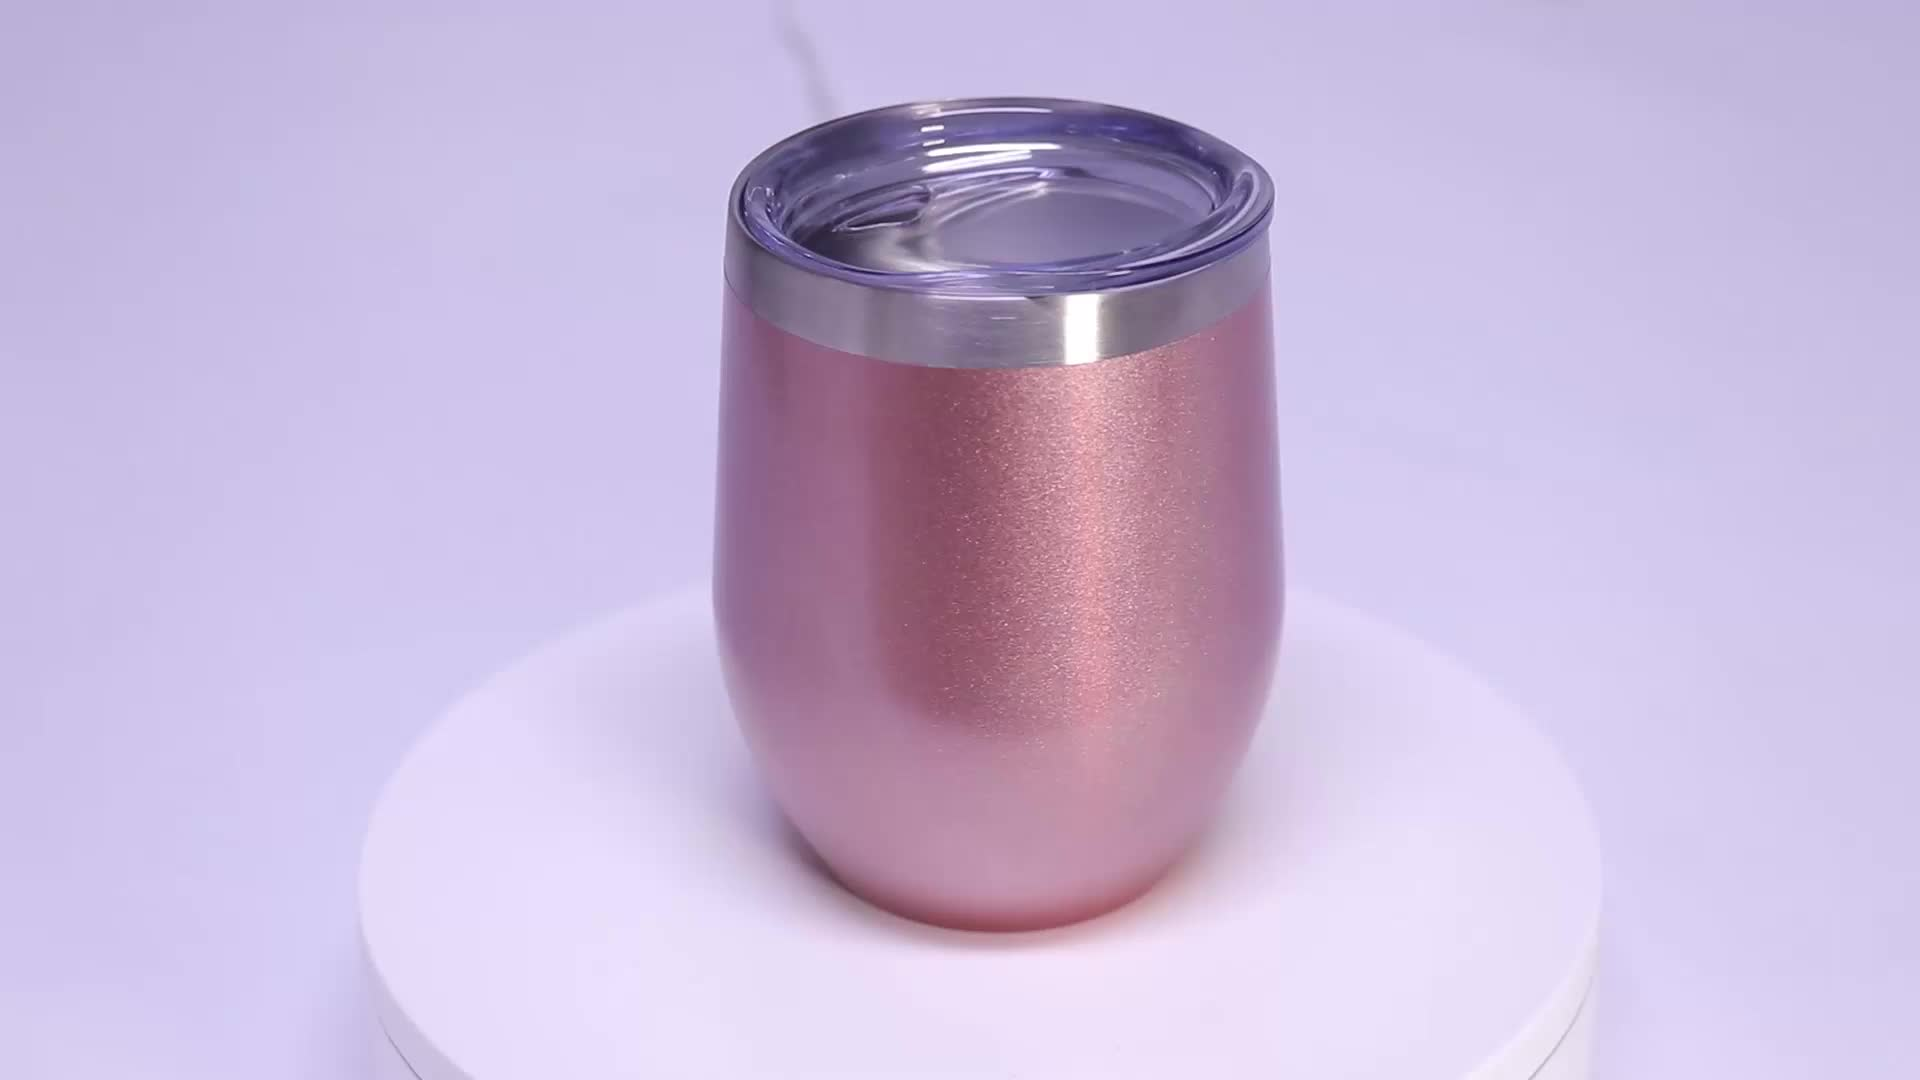 Unionpromo hot sales 16oz 12oz stainless steel wine tumbler with lid straw